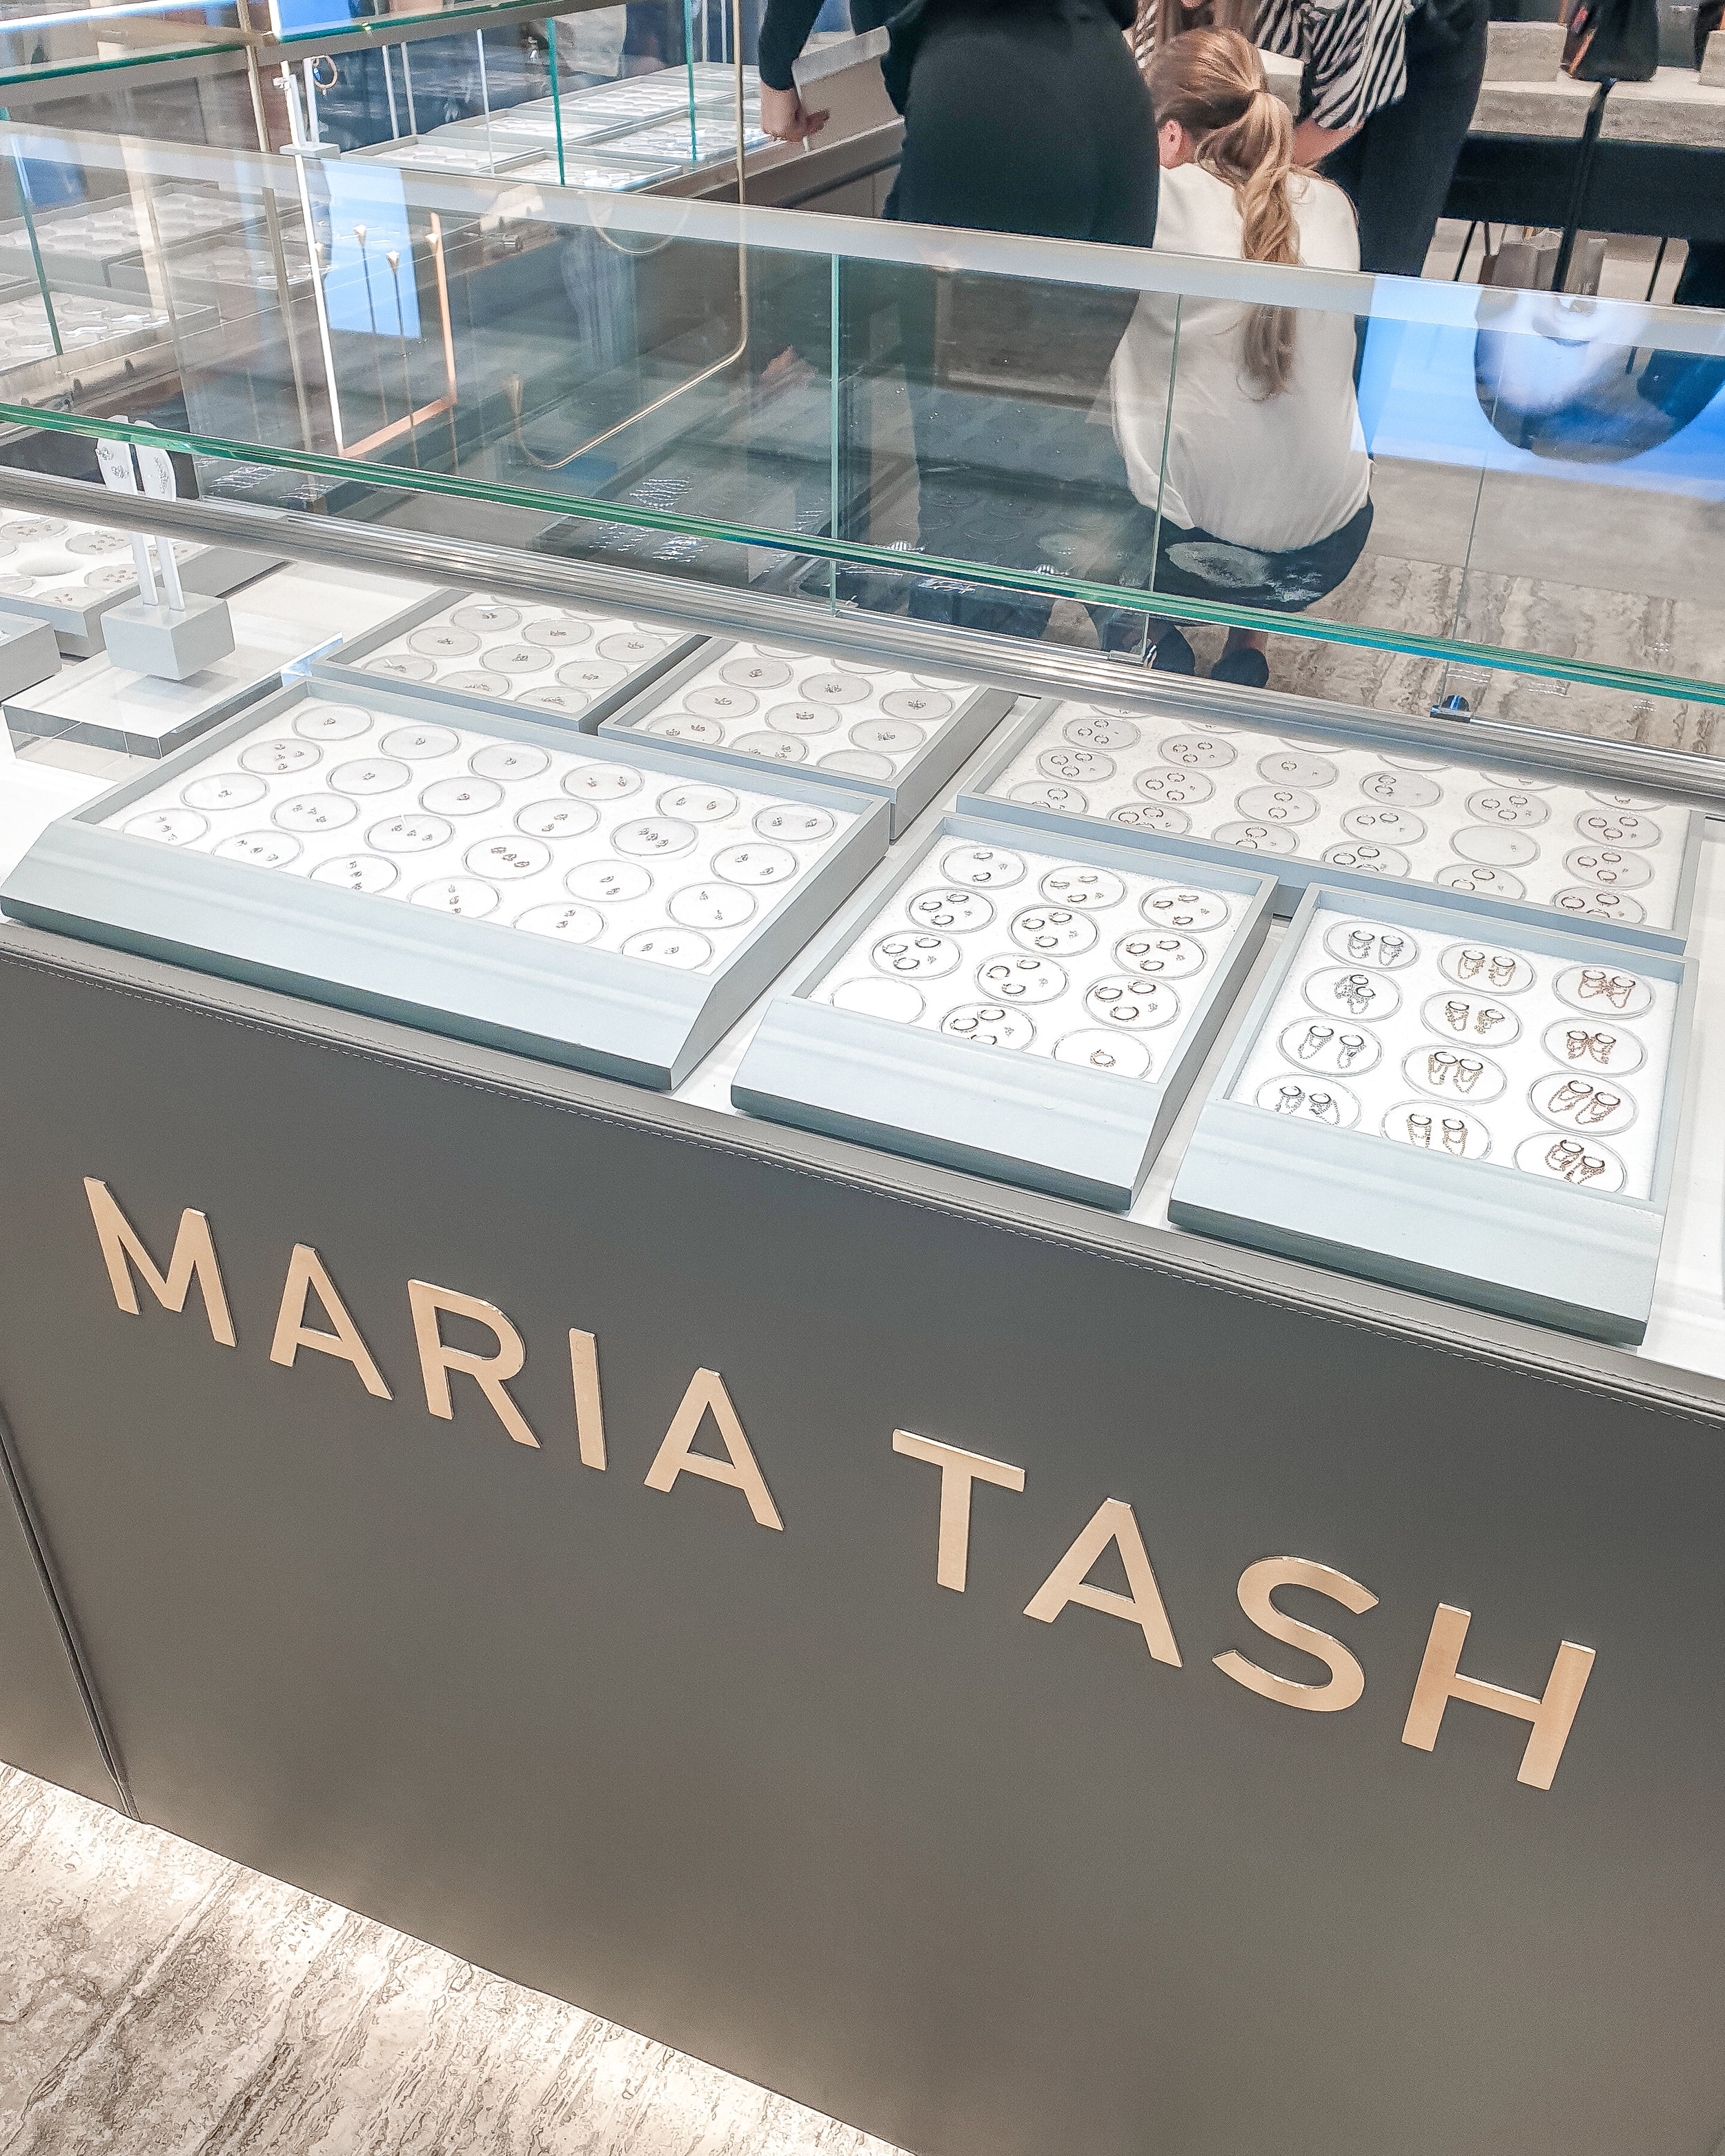 jewellery-counter-maria-tash-dubai.jpg